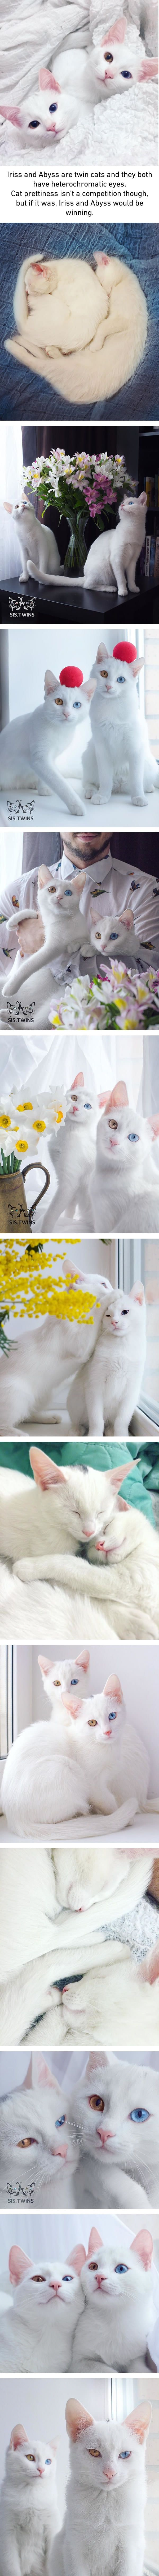 These Photogenic Twin Cats Are Prettier Than Most Of Us.  [Click to go to website for even better pics of these two cuties.]